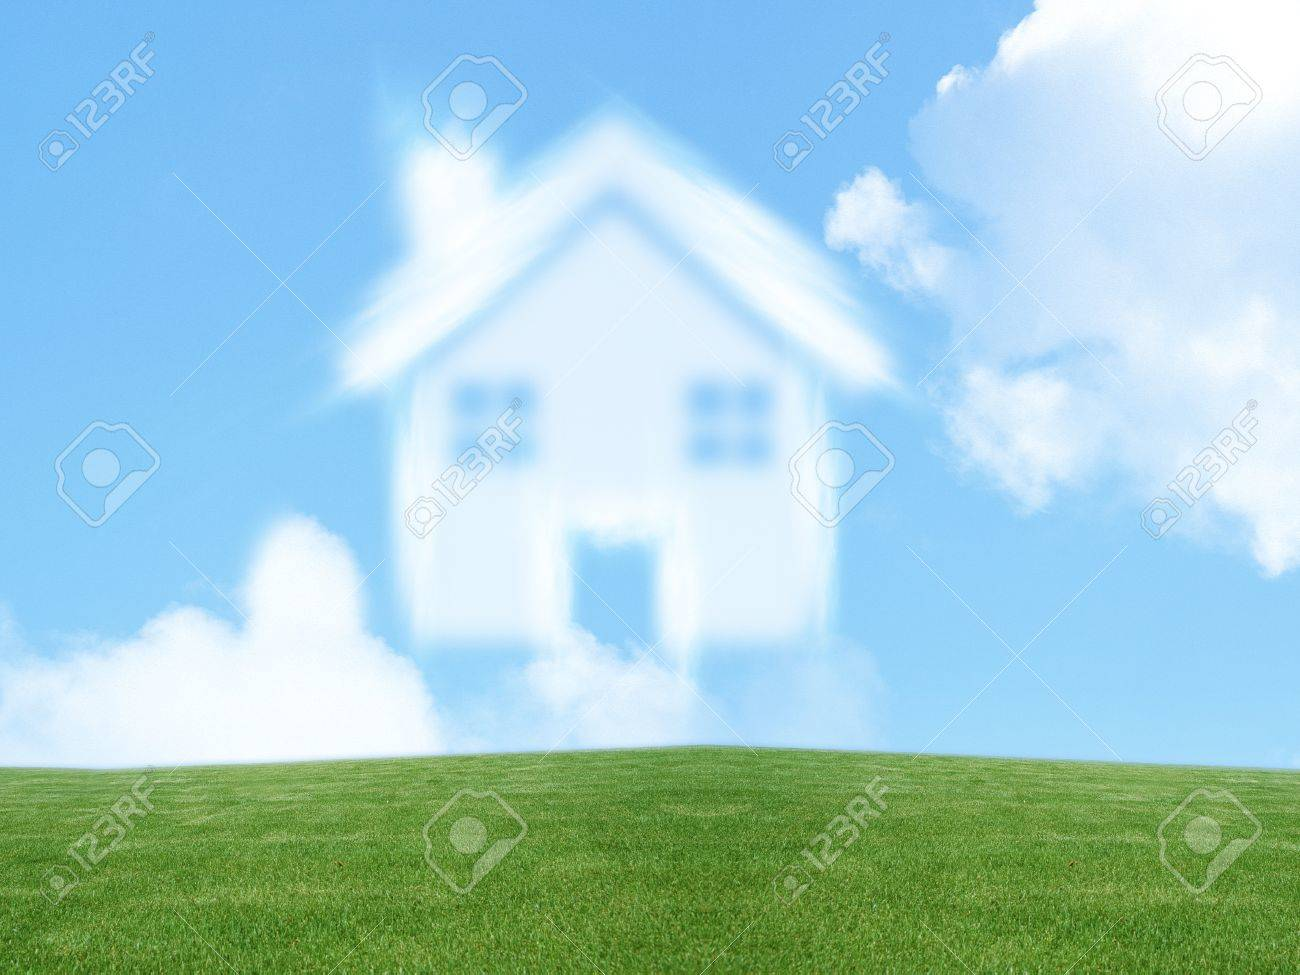 small house from clouds, Dream of homeownership Stock Photo - 11674050